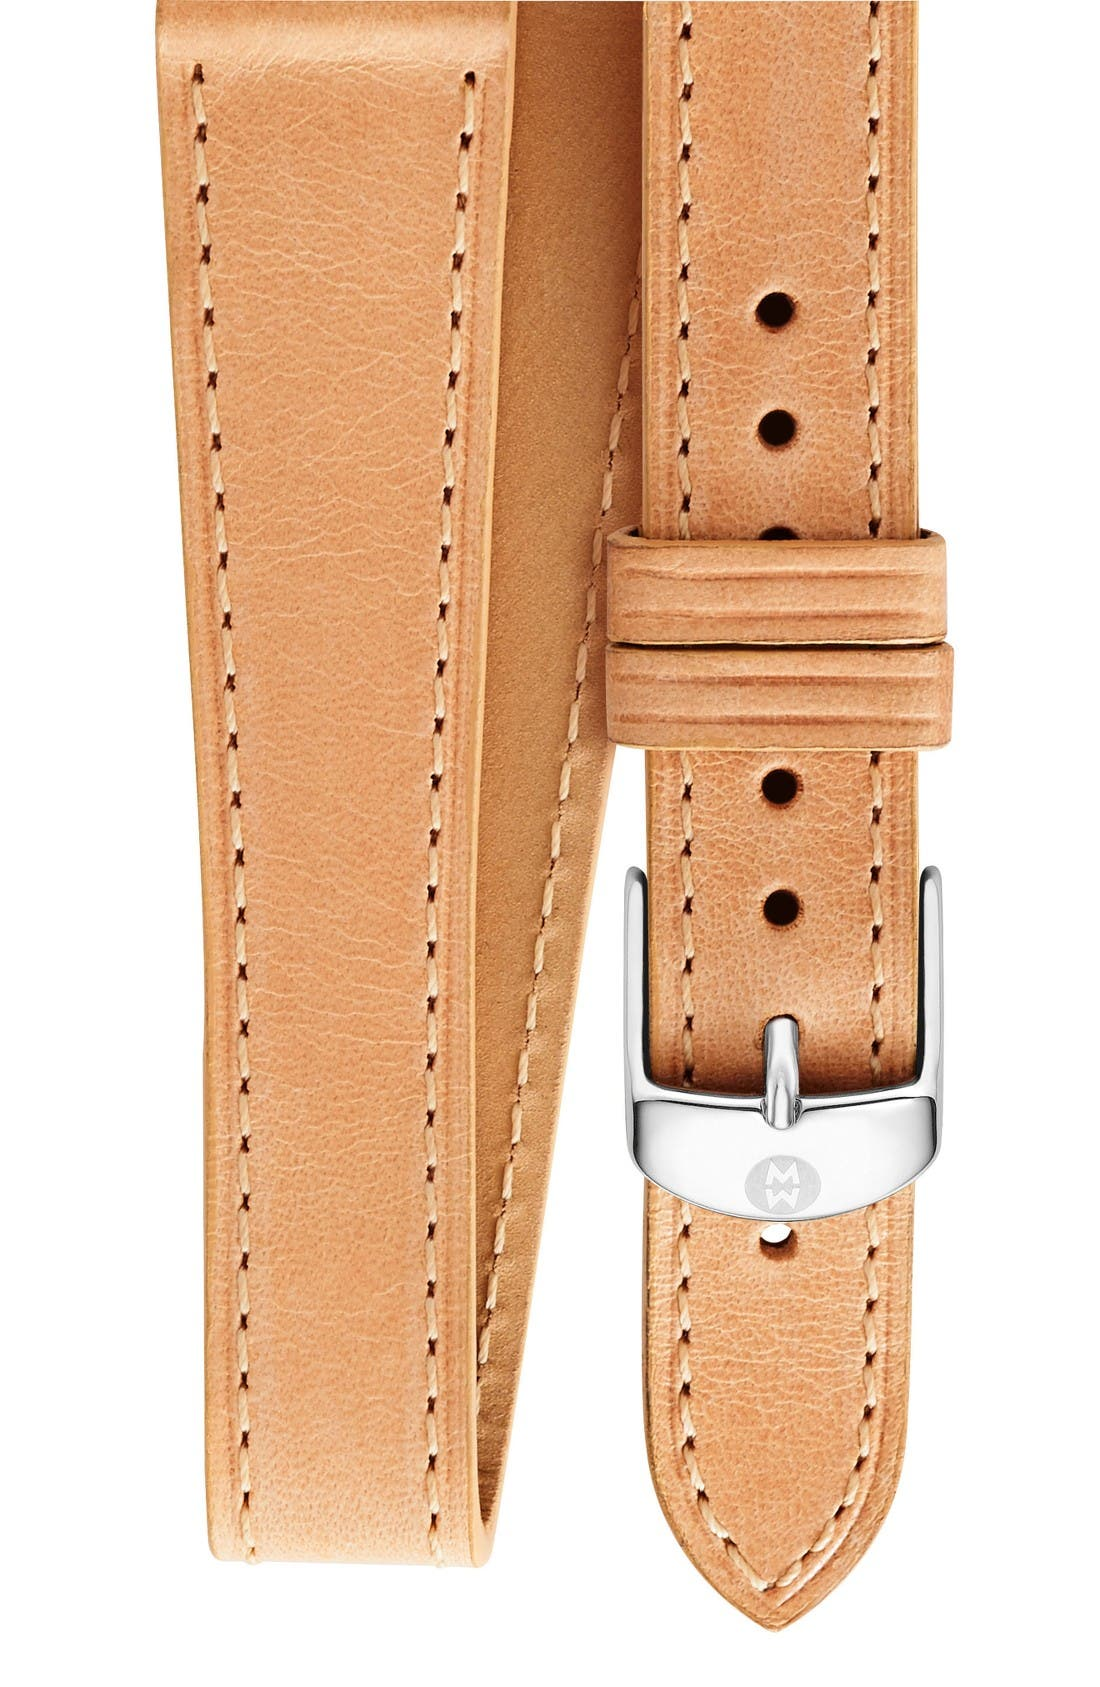 Alternate Image 1 Selected - MICHELE 18mm Leather Wrap Watch Strap